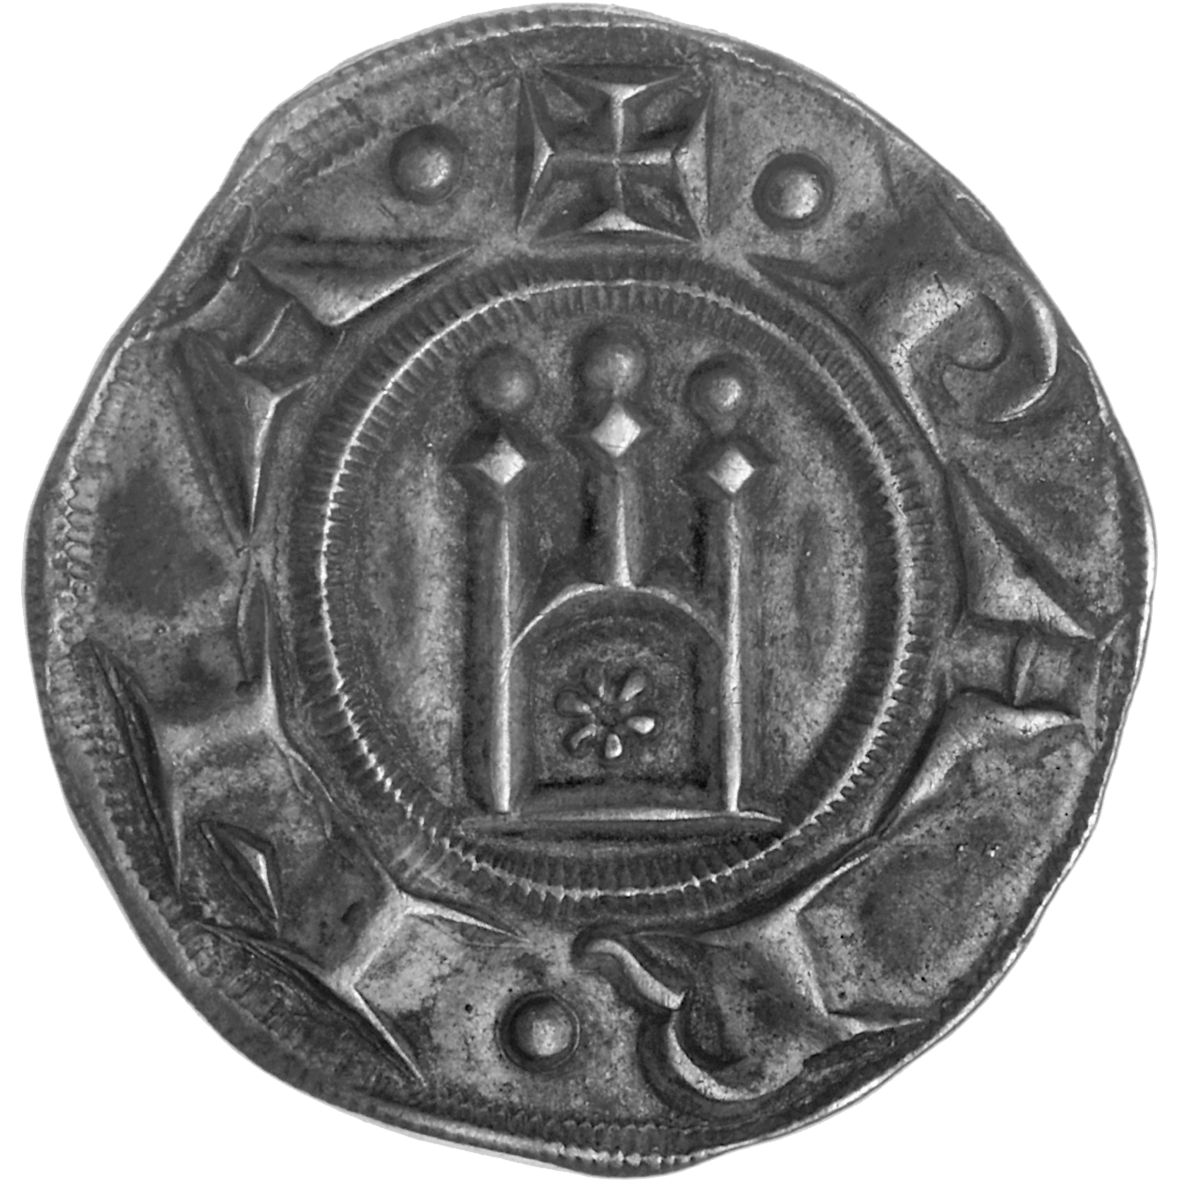 Holy Roman Empire, Republic of Parma, Grosso in the Name of Frederick II of Staufen (obverse)